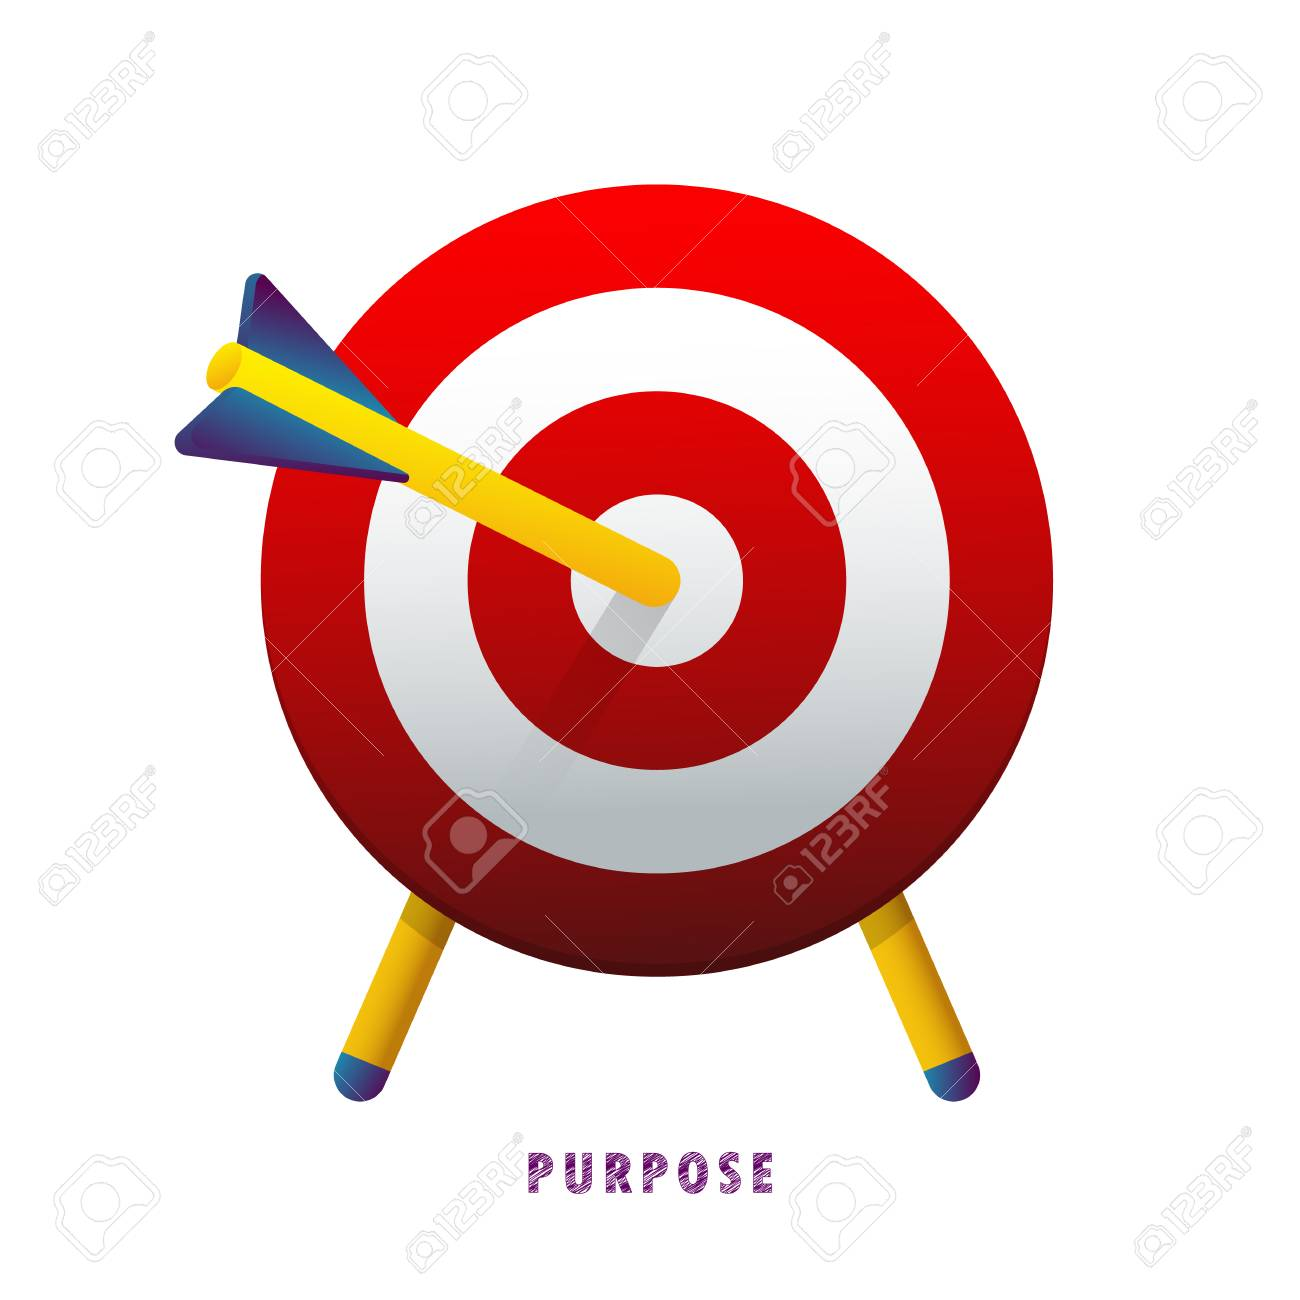 Purpose. The arrow in the target. Vector illustration. Flat. Gradient. - 104062236